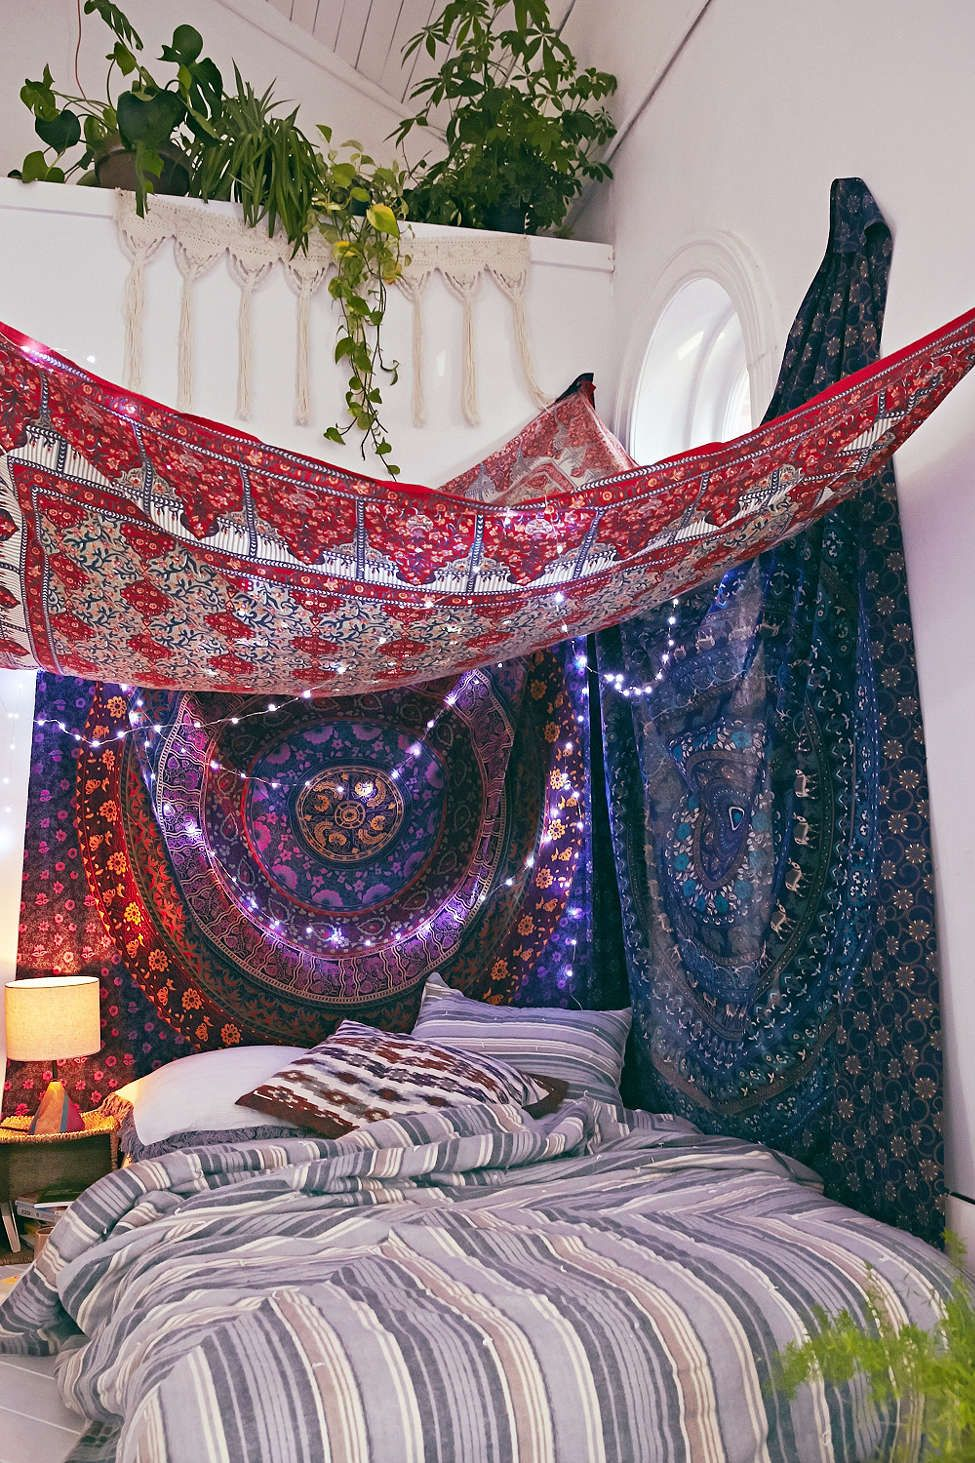 Urban outfitters bedroom tapestry -